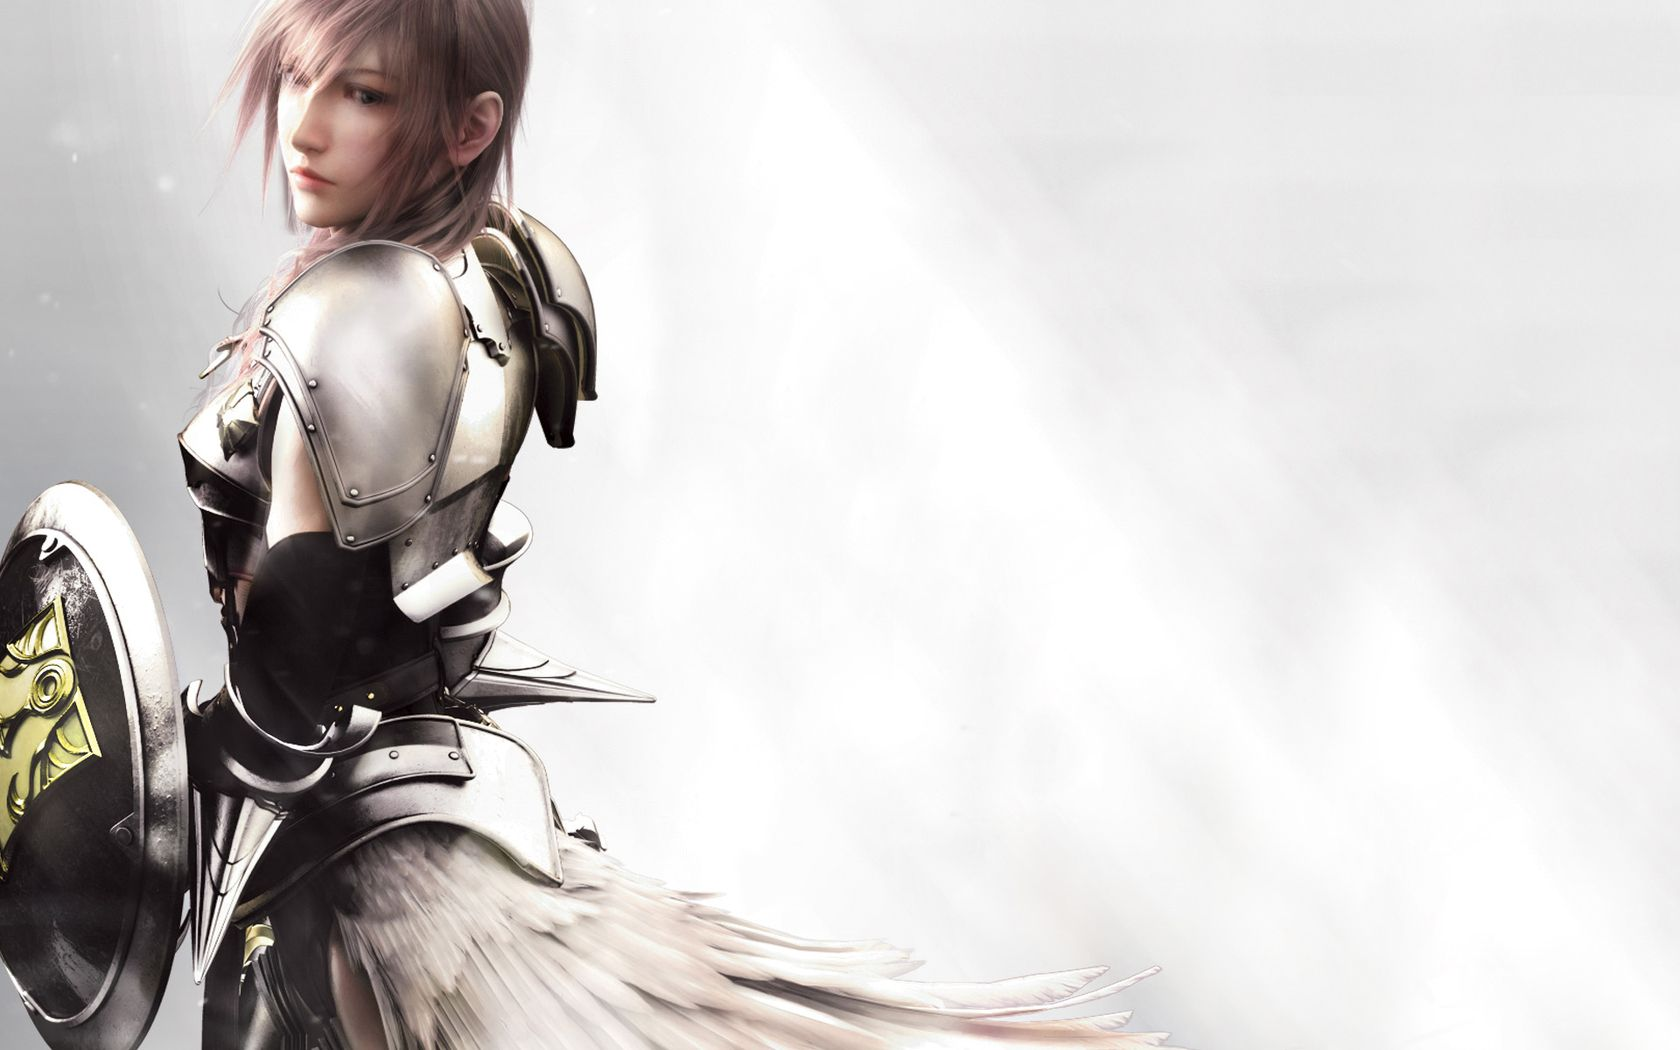 Lightning returns final fantasy xiii wallpaper full hd lightning returns final fantasy xiii wallpaper full hd voltagebd Gallery